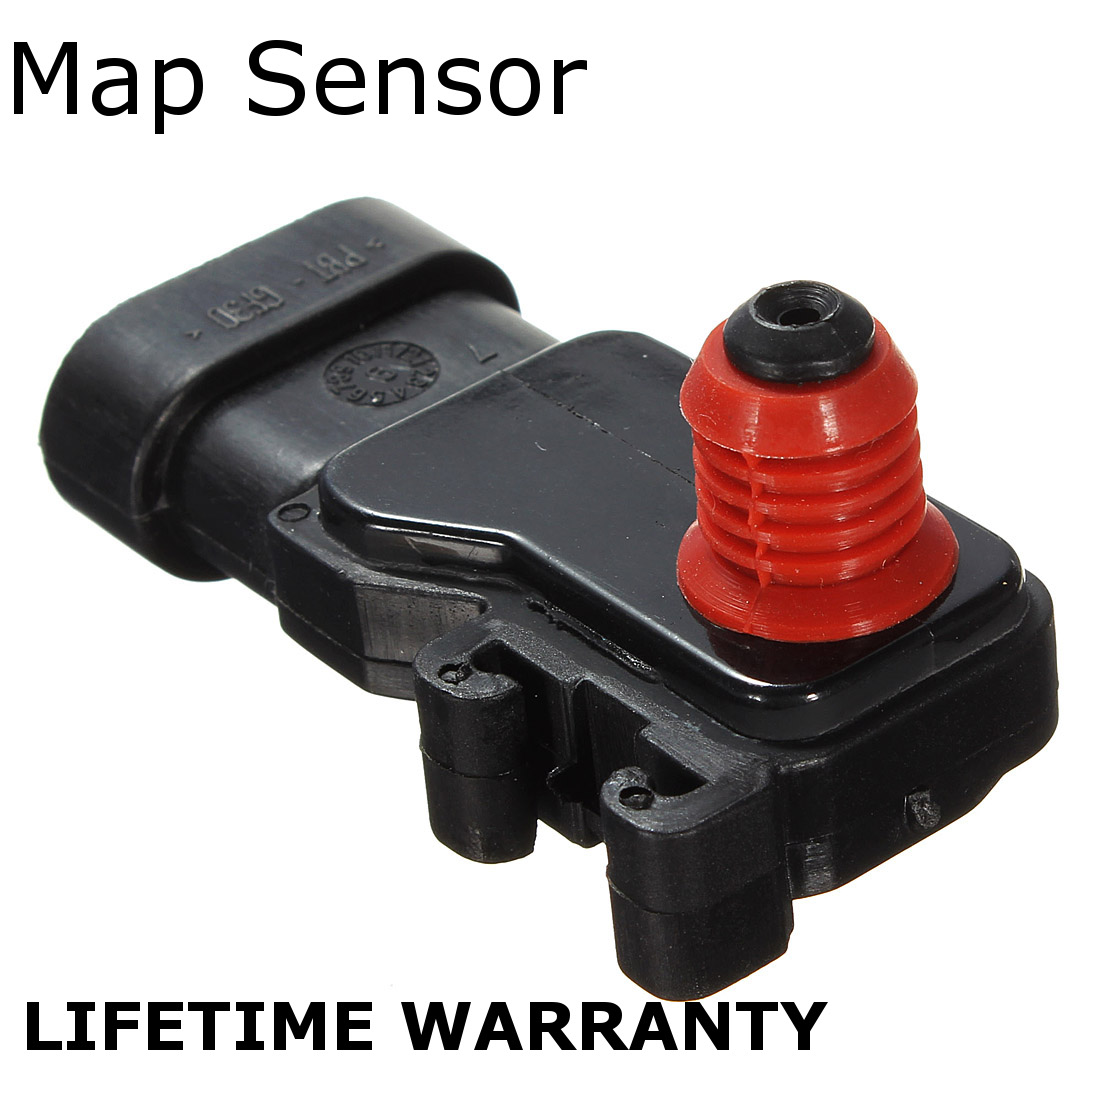 pontiac map sensor location ford map sensor location